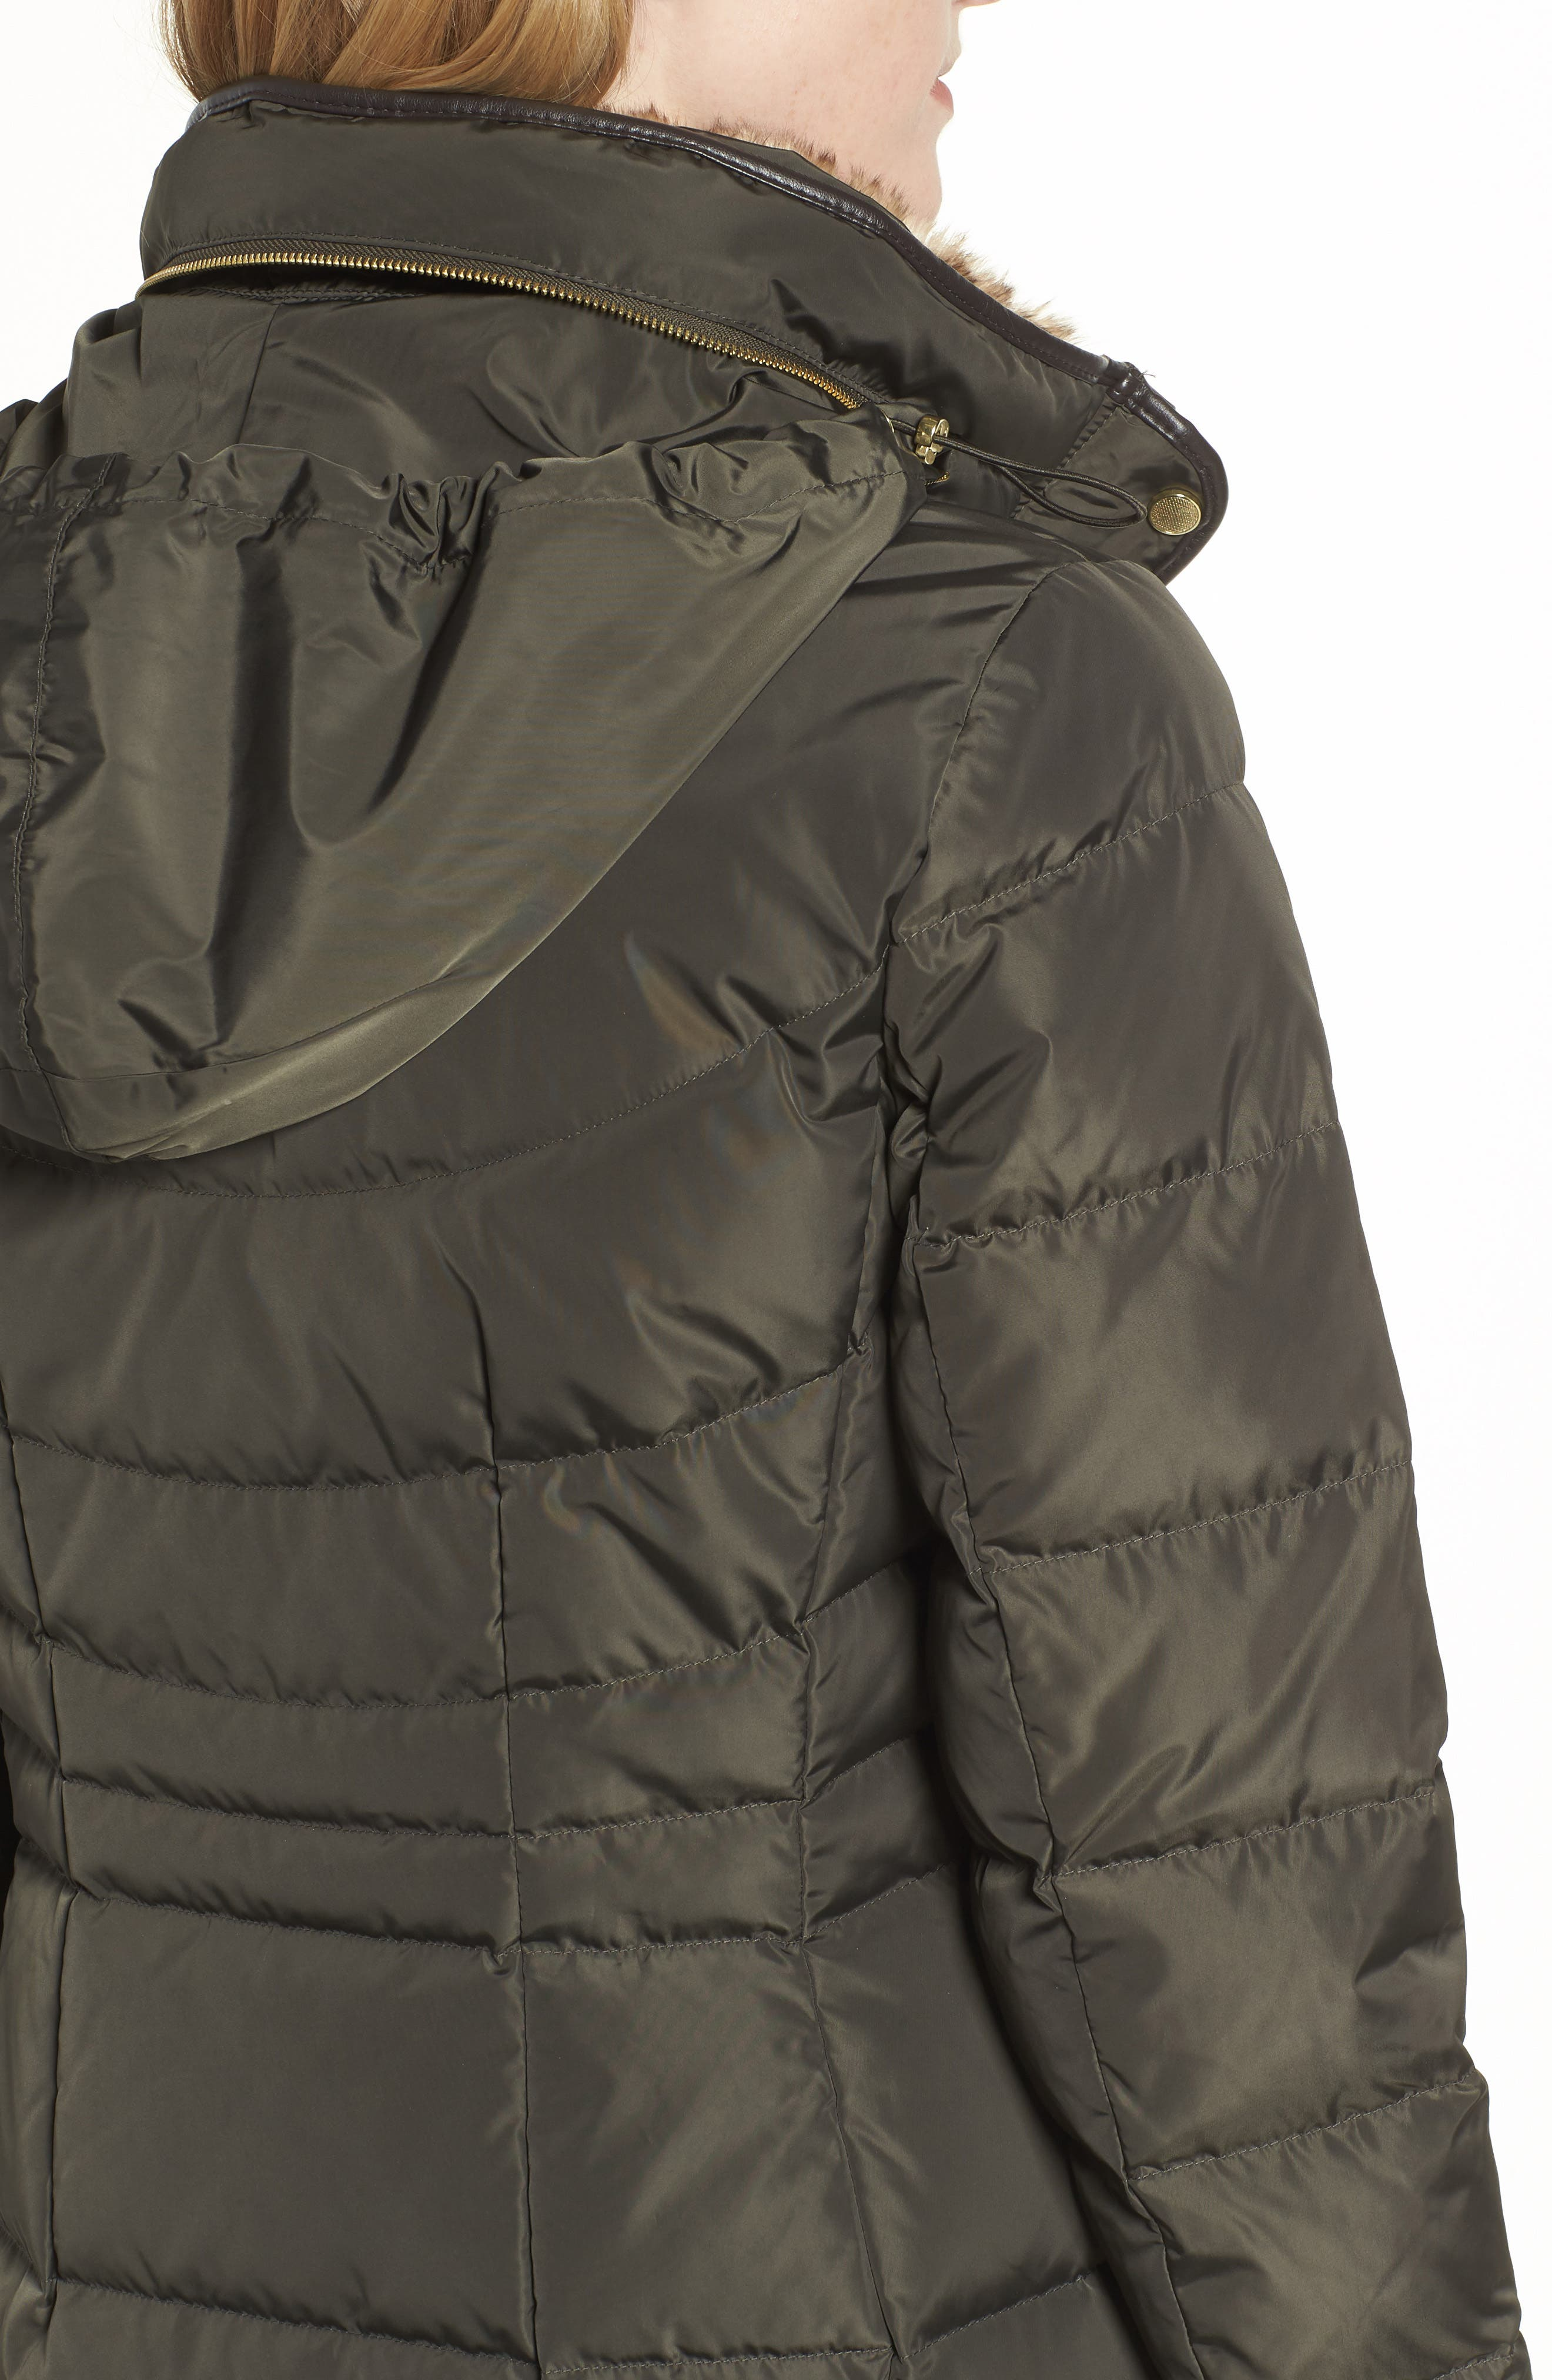 Cole Haan Quilted Down & Feather Fill Jacket with Faux Fur Trim,                             Alternate thumbnail 4, color,                             FOREST